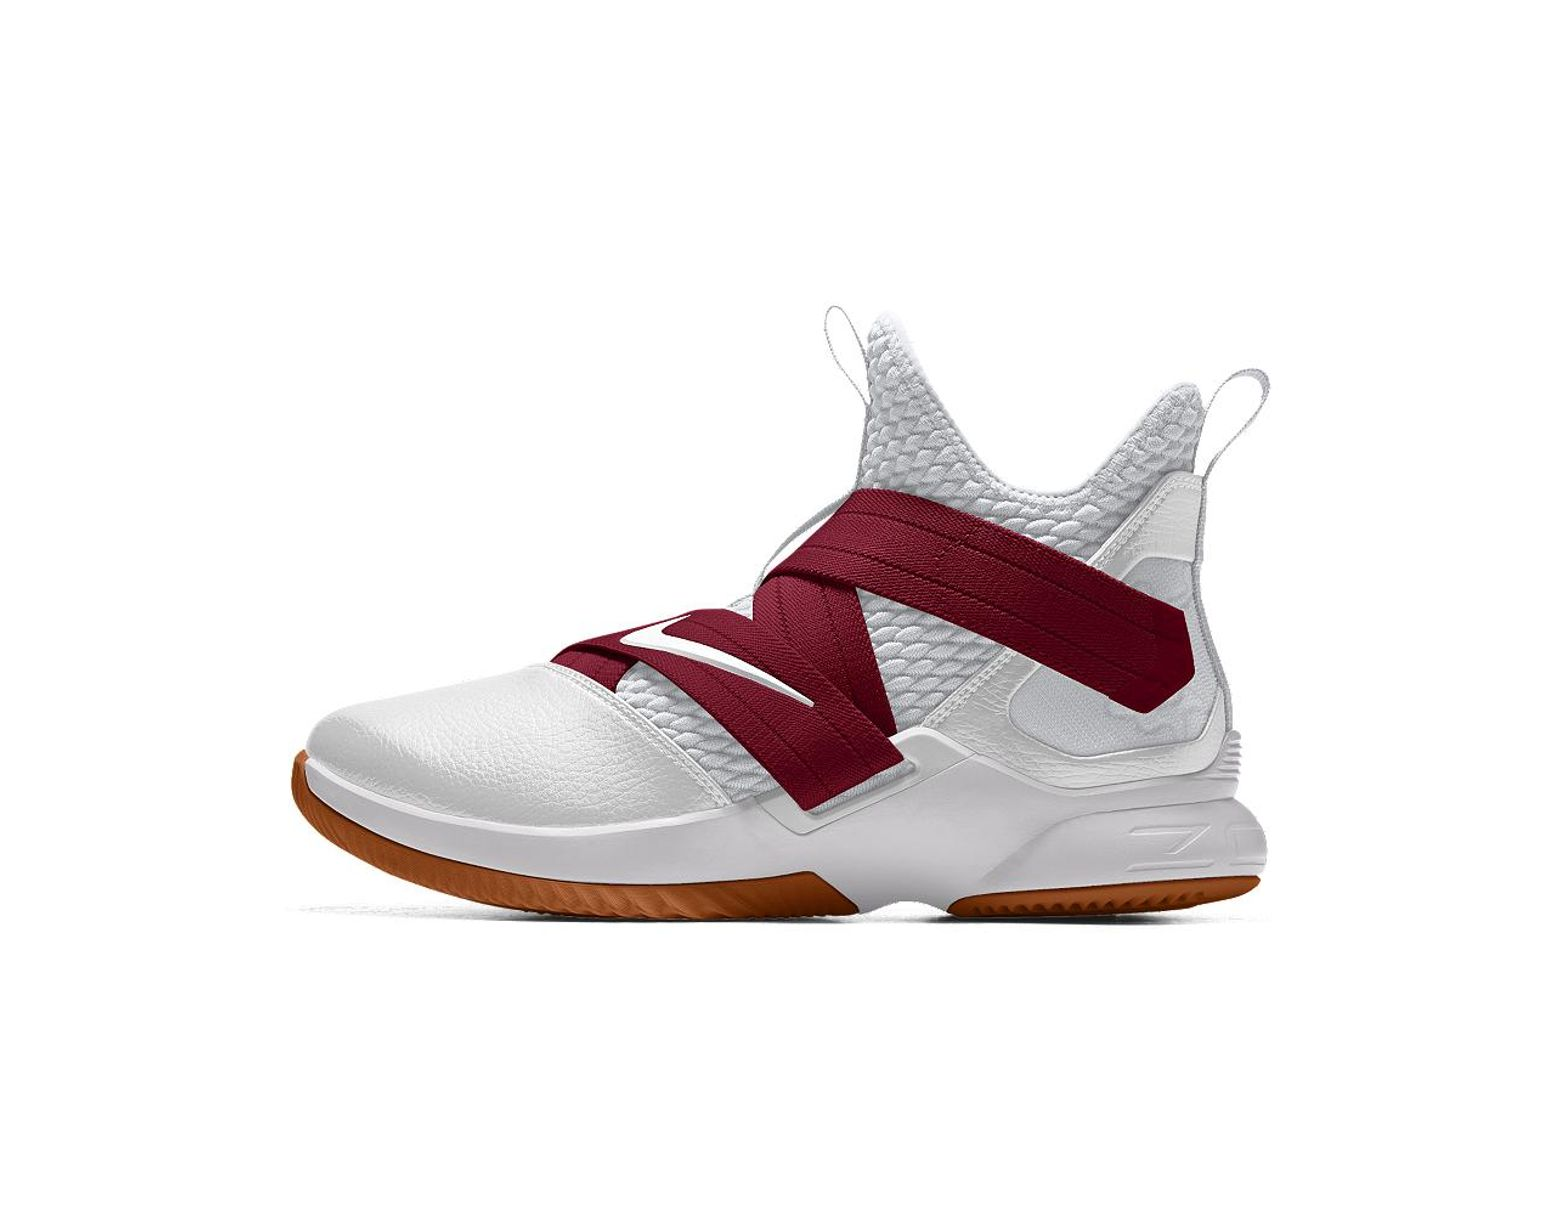 59acf8f61fcc Lyst - Nike Lebron Soldier Xii Id Men s Basketball Shoe for Men